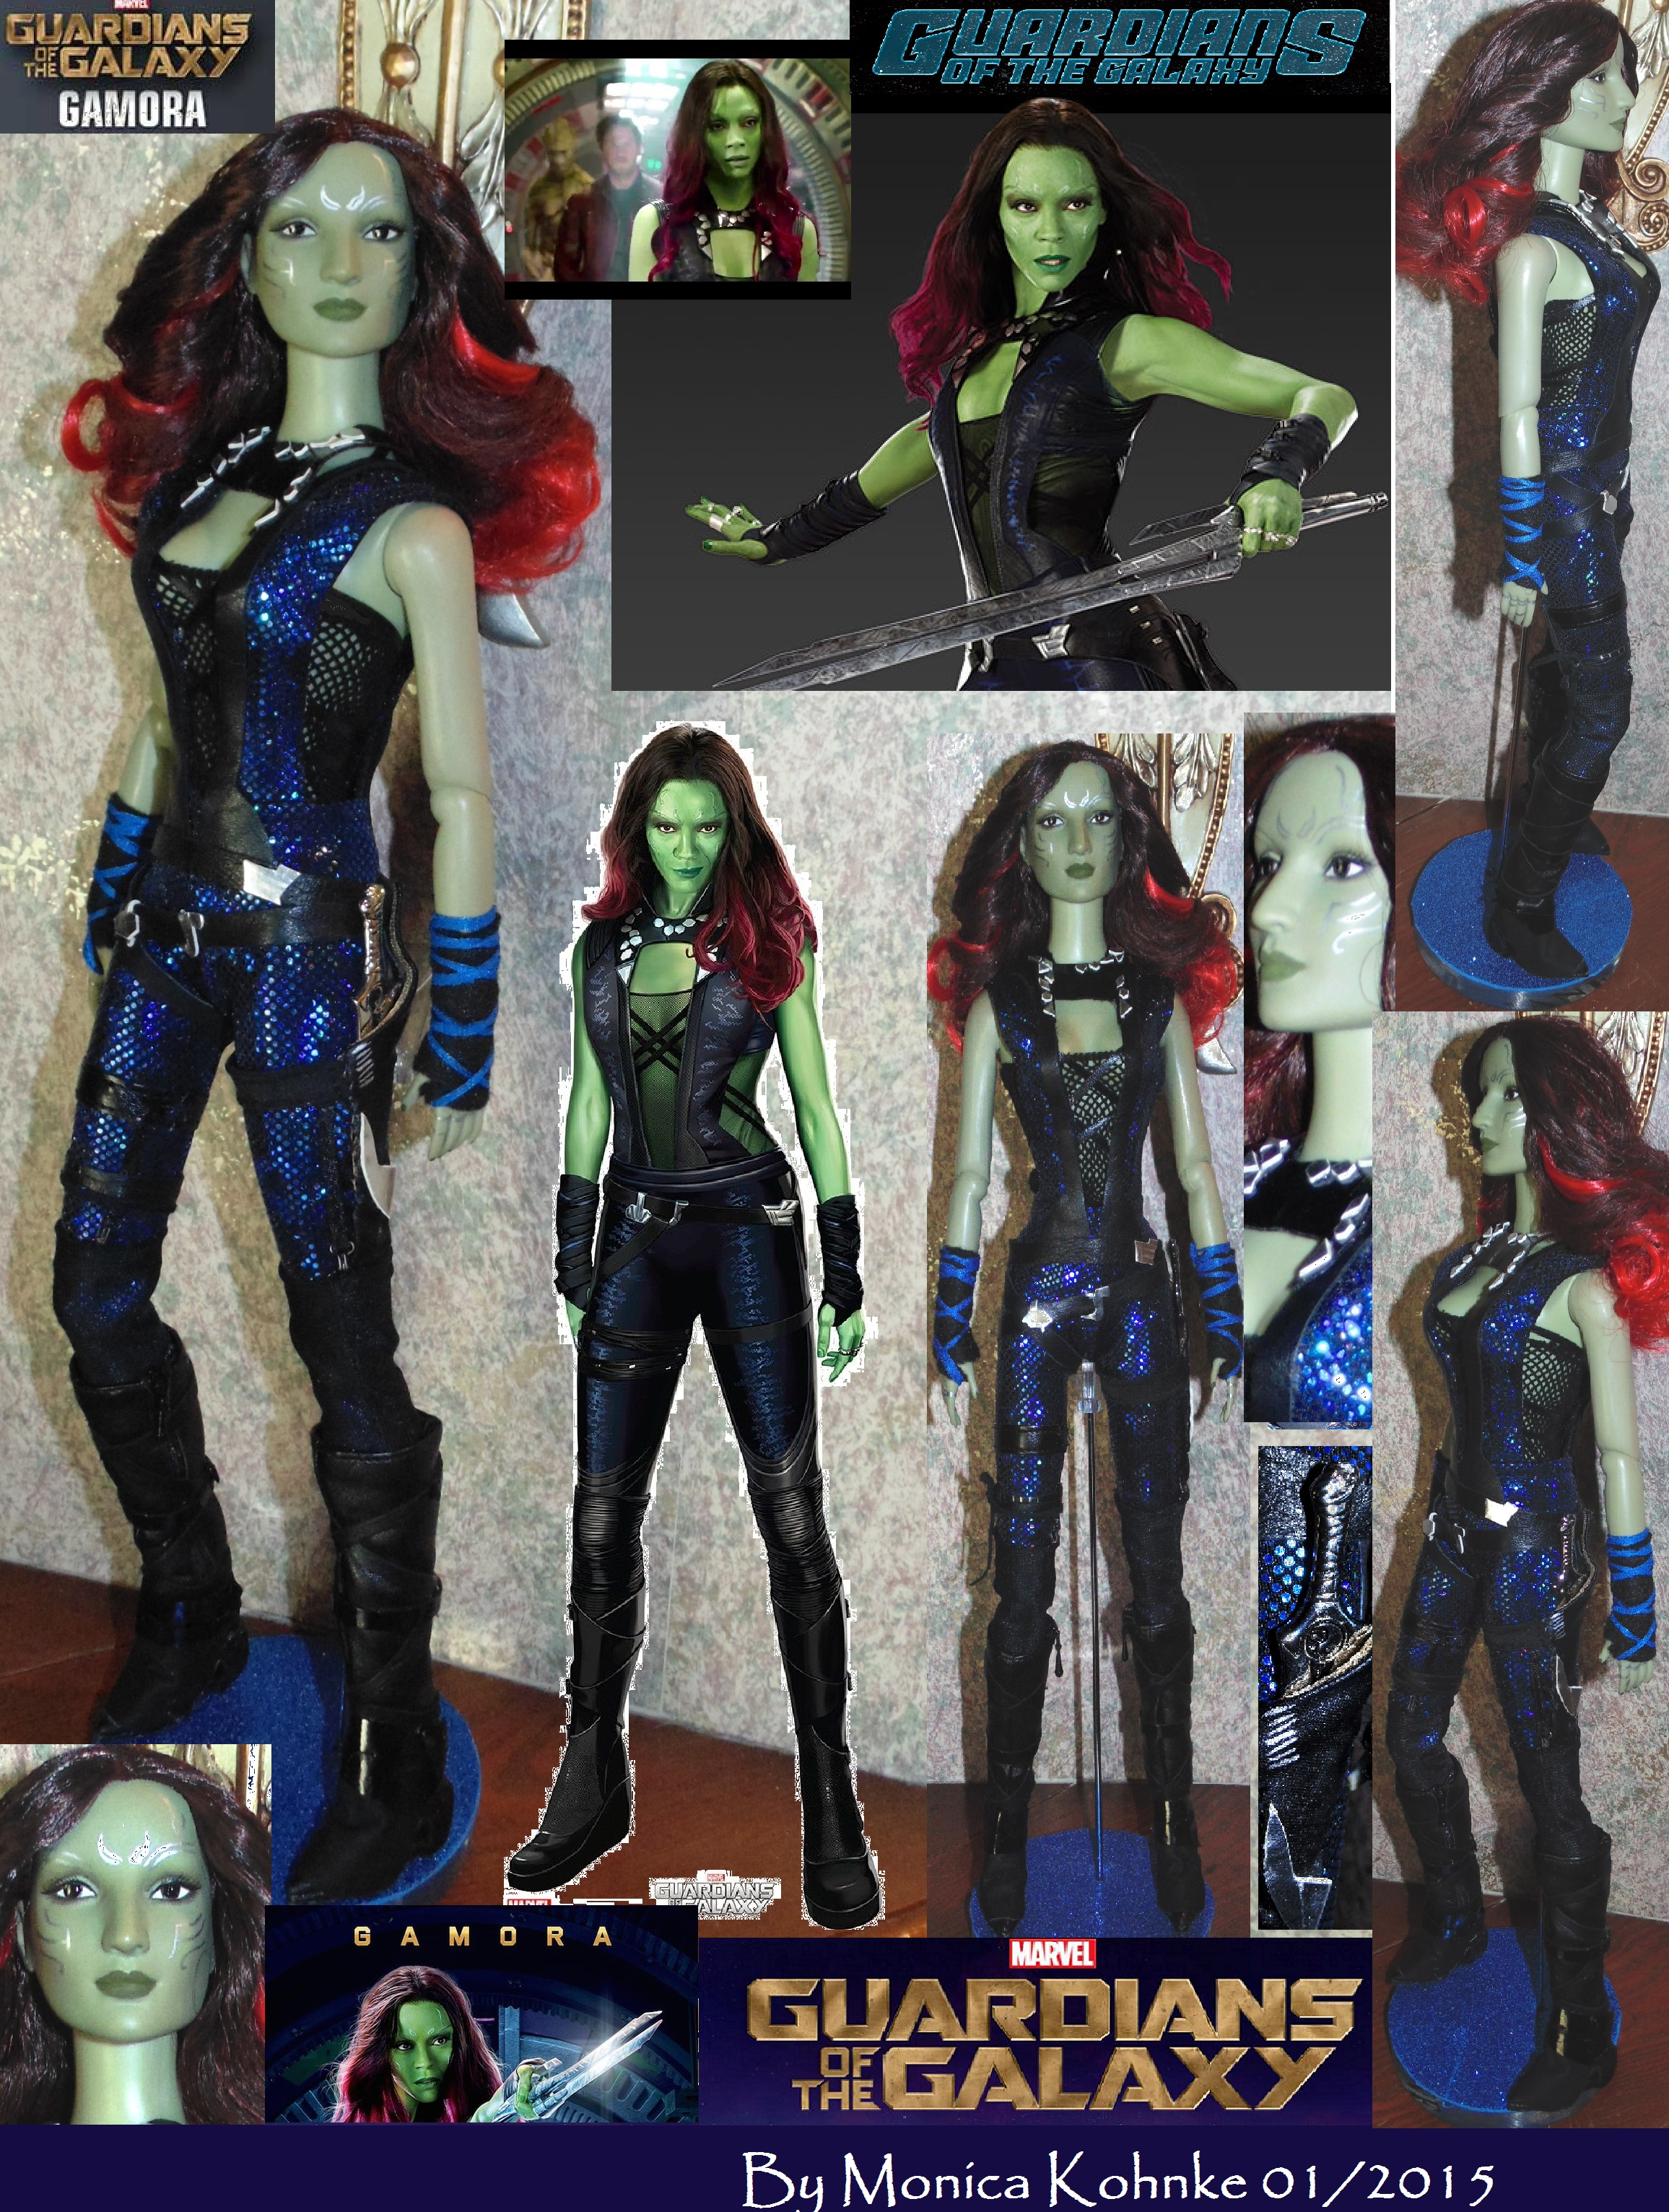 Gamora, Guardians of the Galaxy